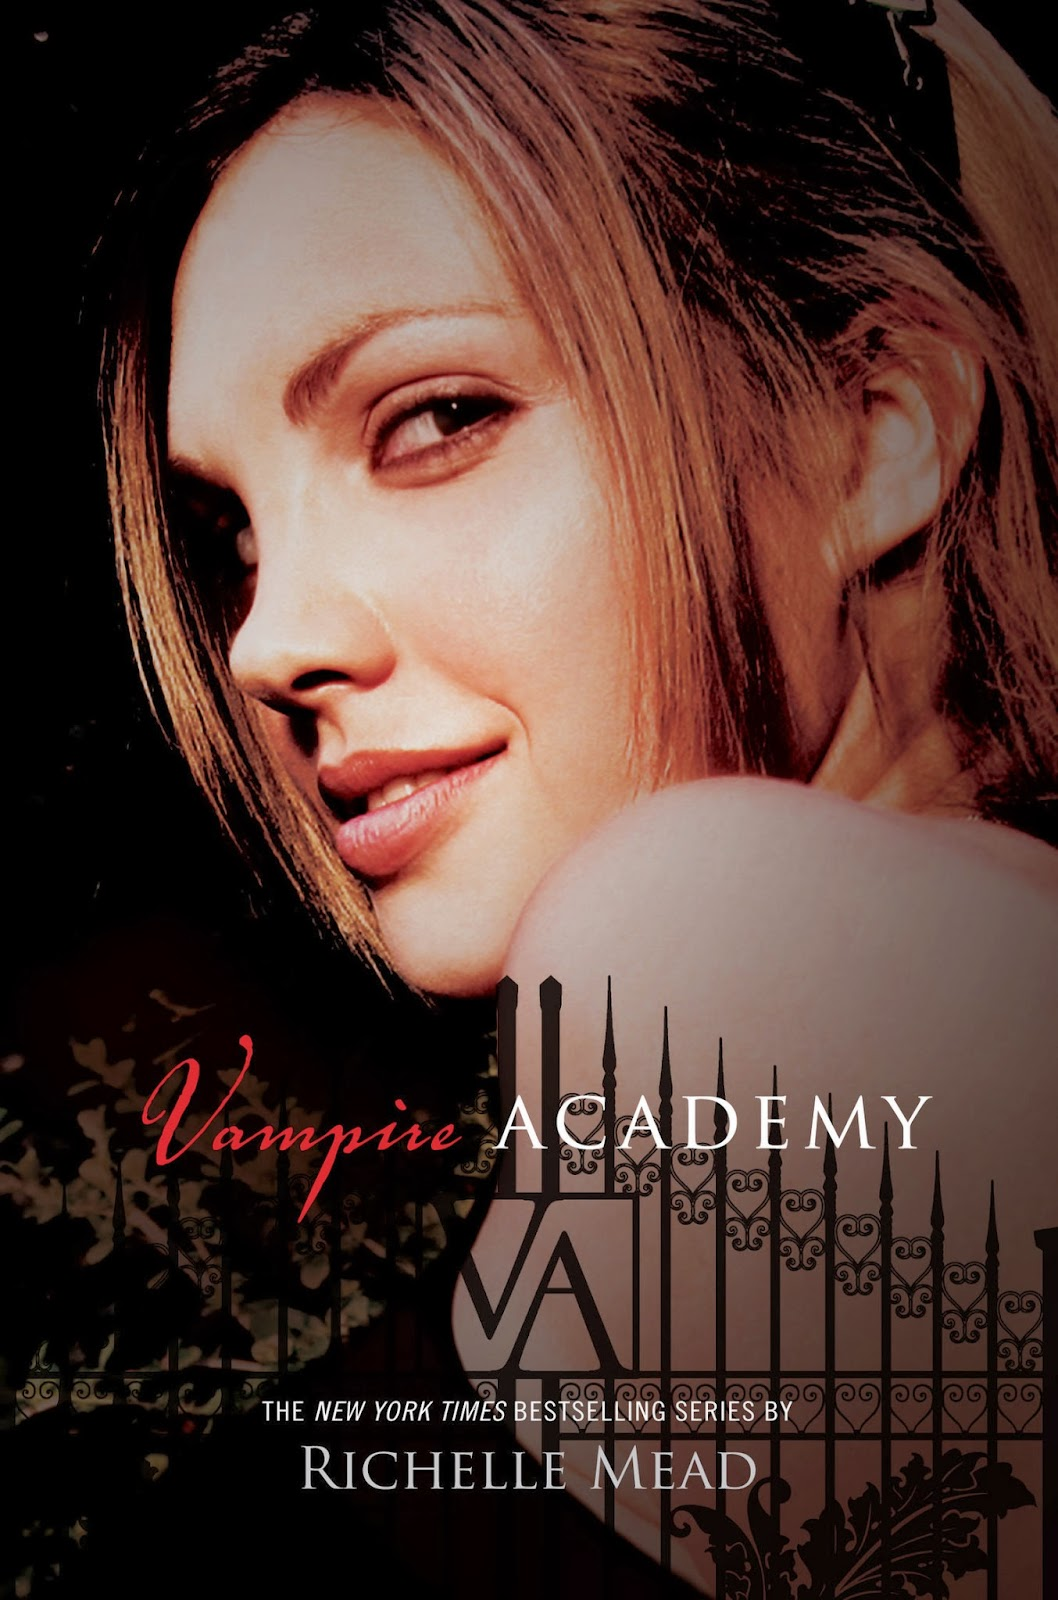 Vampire Academy a best selling vampire novel by Richelle Mead